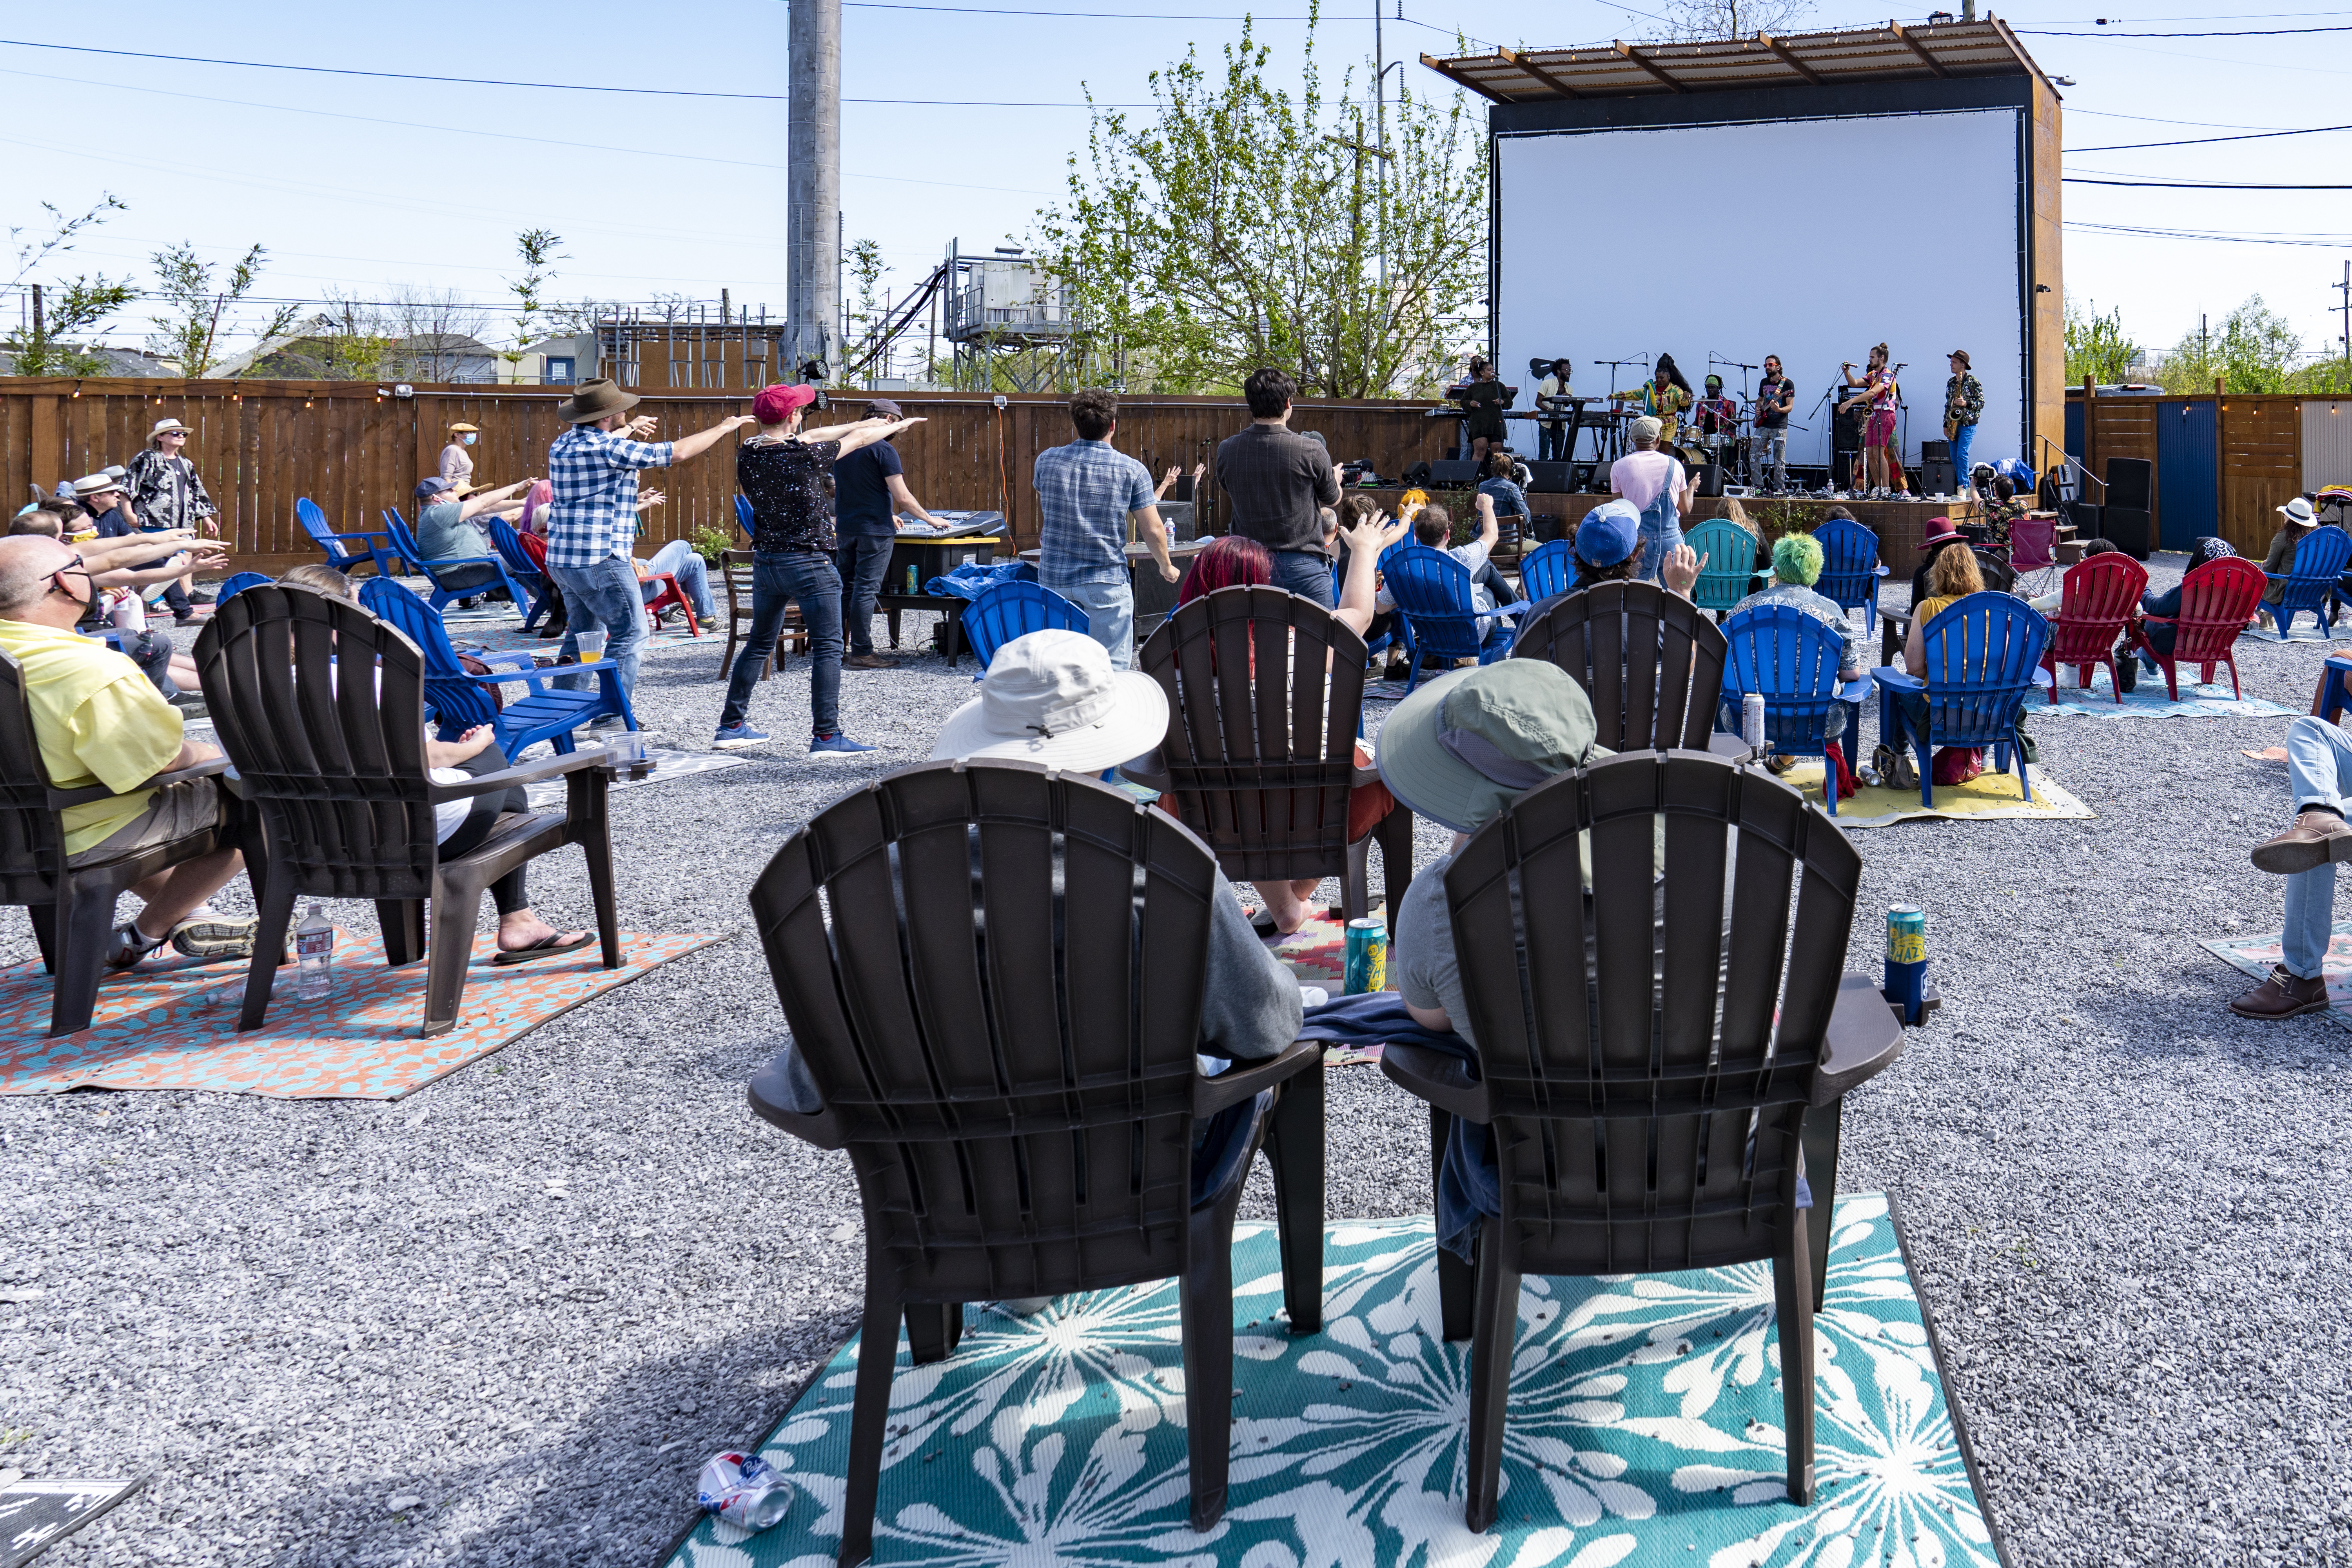 People sit in chairs watching Tank & The Bangas in concert the Broadside New Orleans, an all-outdoor music venue founded during the pandemic